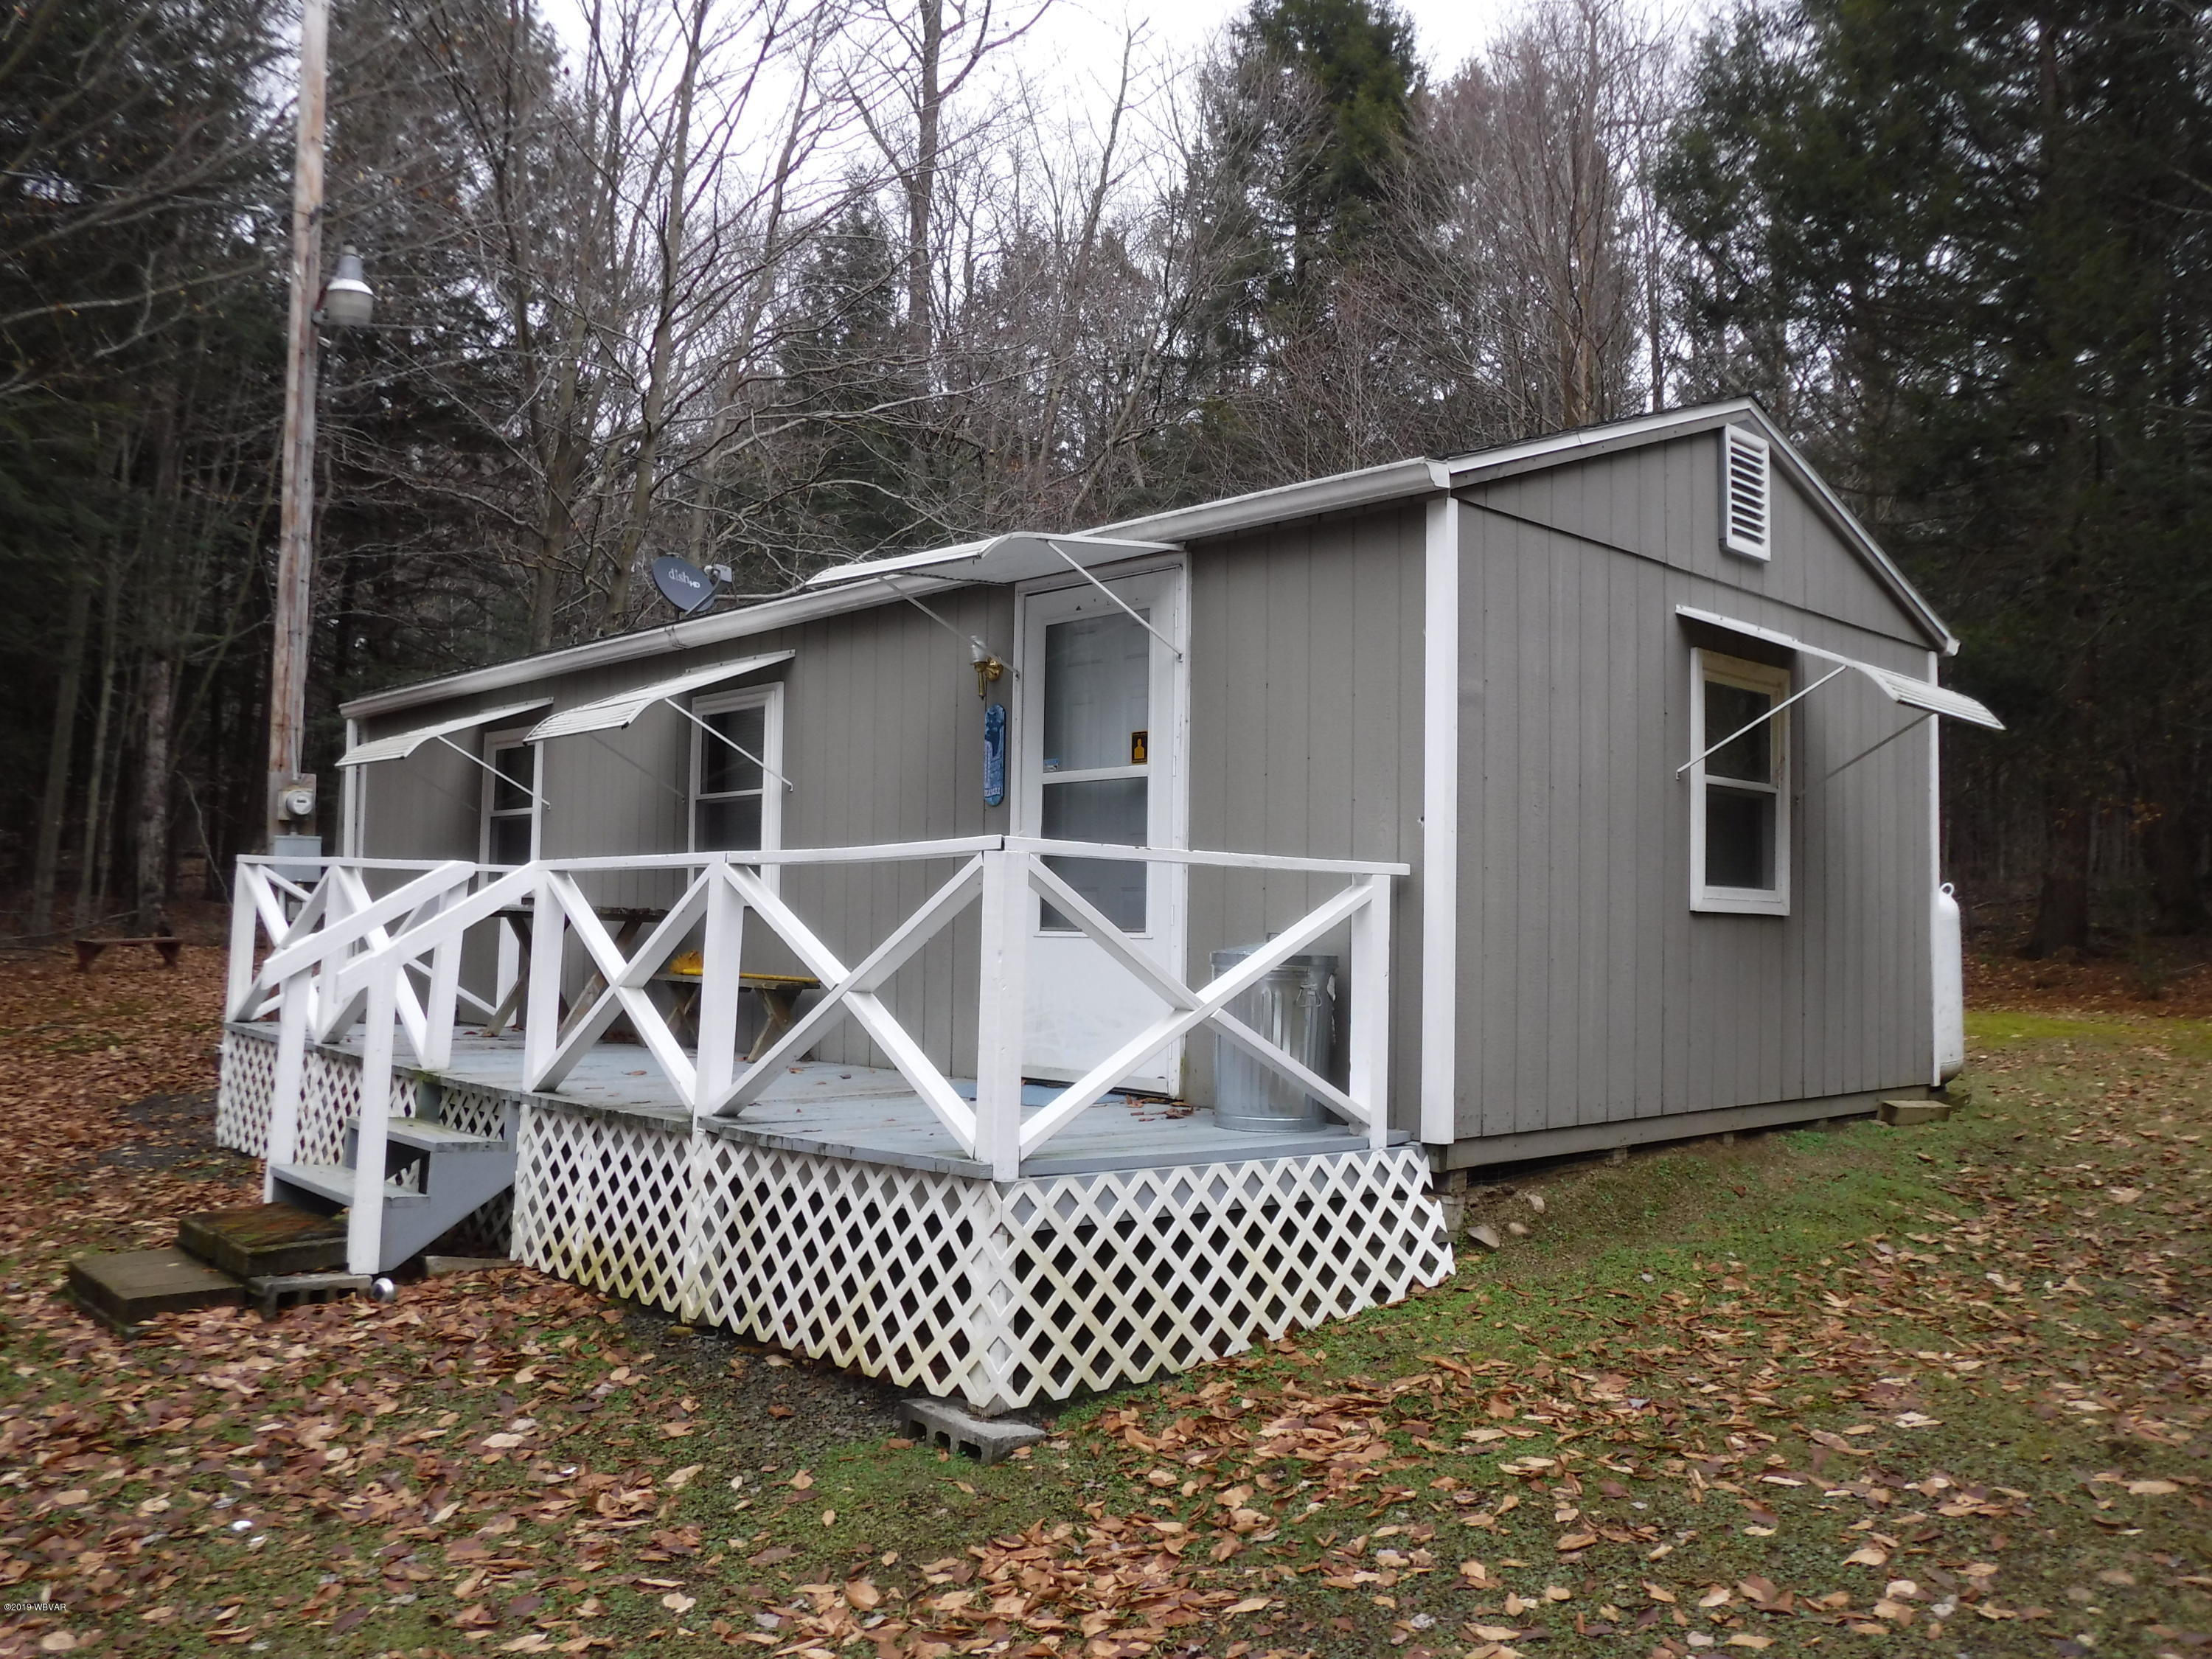 516 PICNIC GROUND ROAD,Shunk,PA 17768,1 Bedroom Bedrooms,Cabin/vacation home,PICNIC GROUND,WB-86168